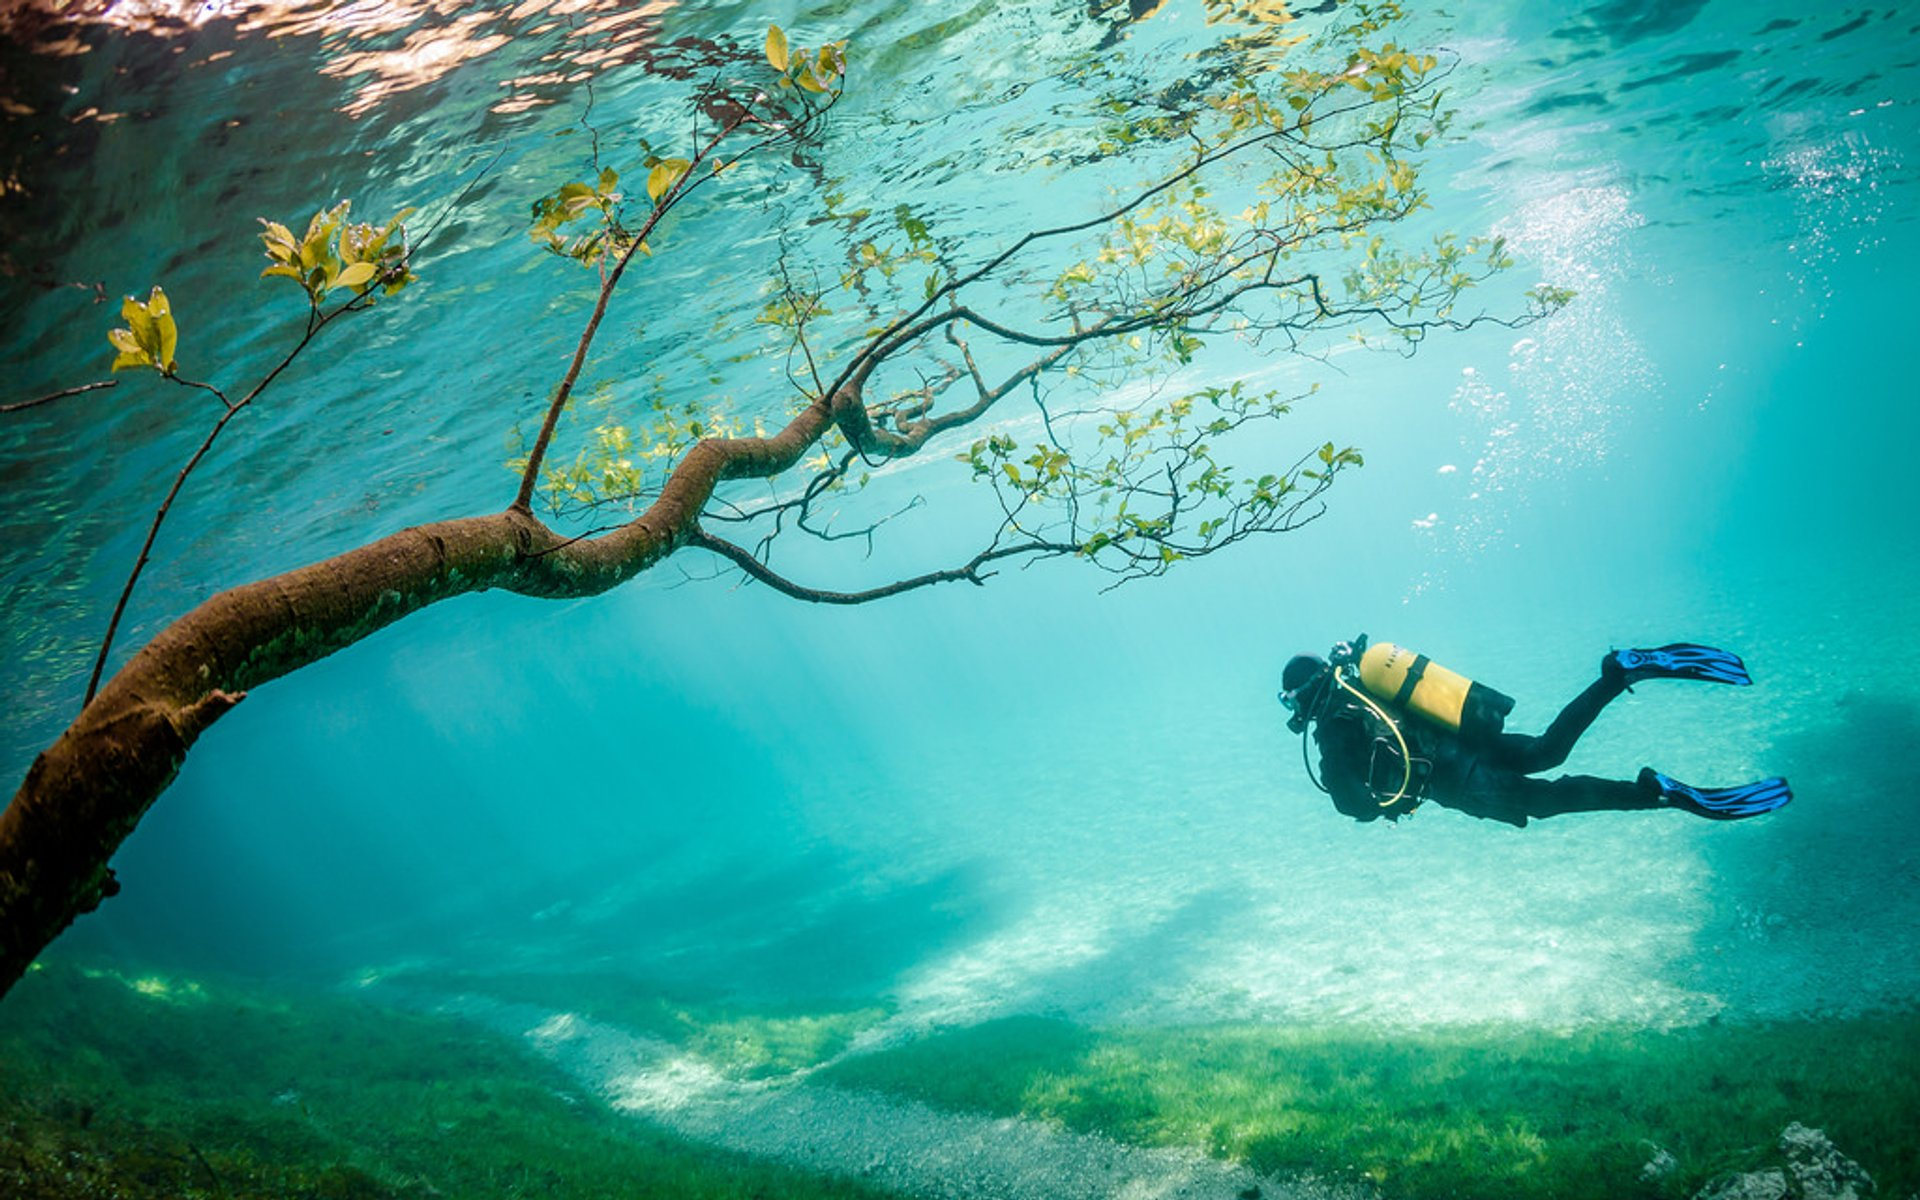 Best time to see Green Lake Park in Austria